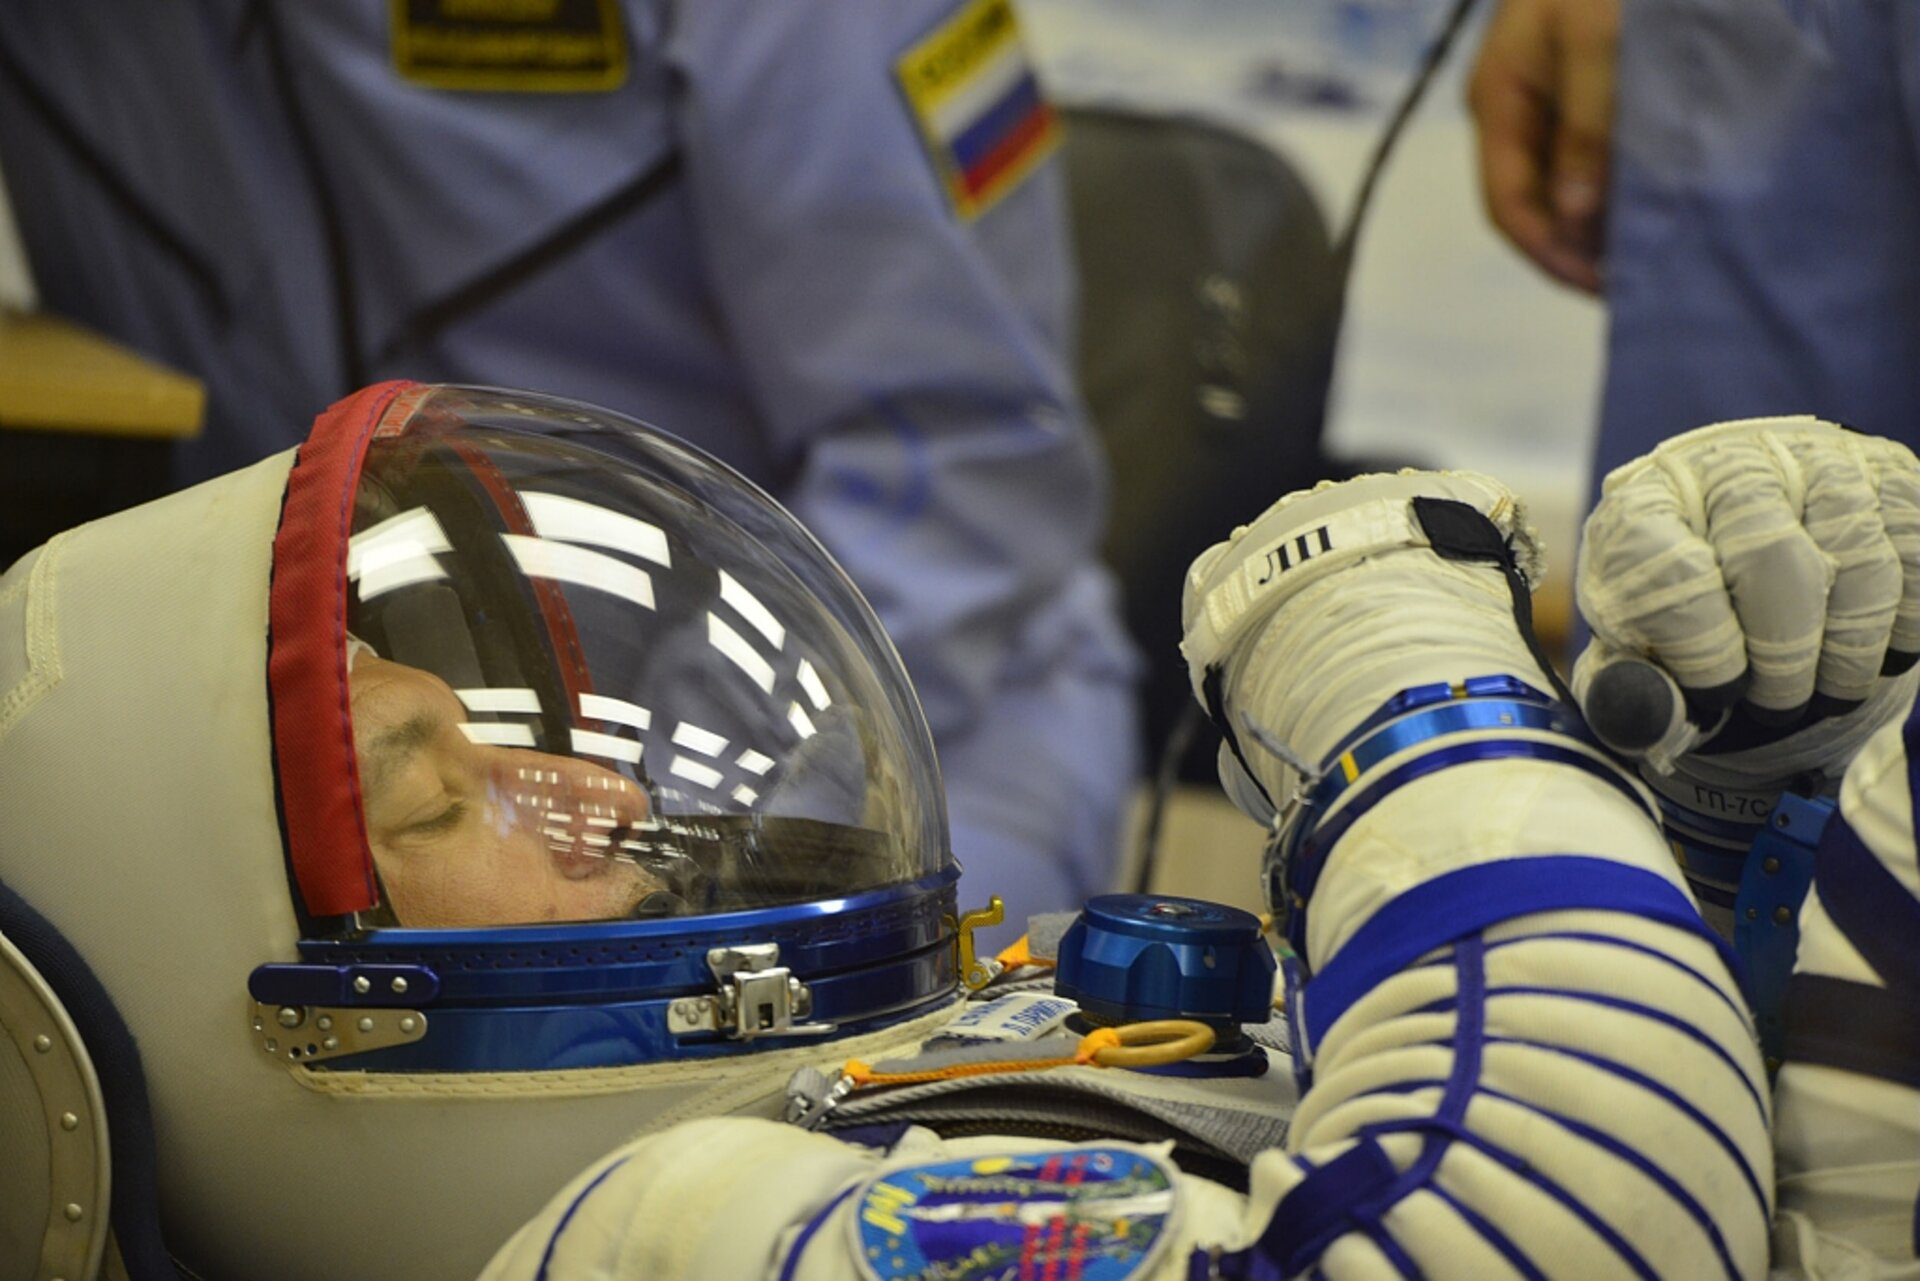 Luca Parmitano in his Sokol spacesuit